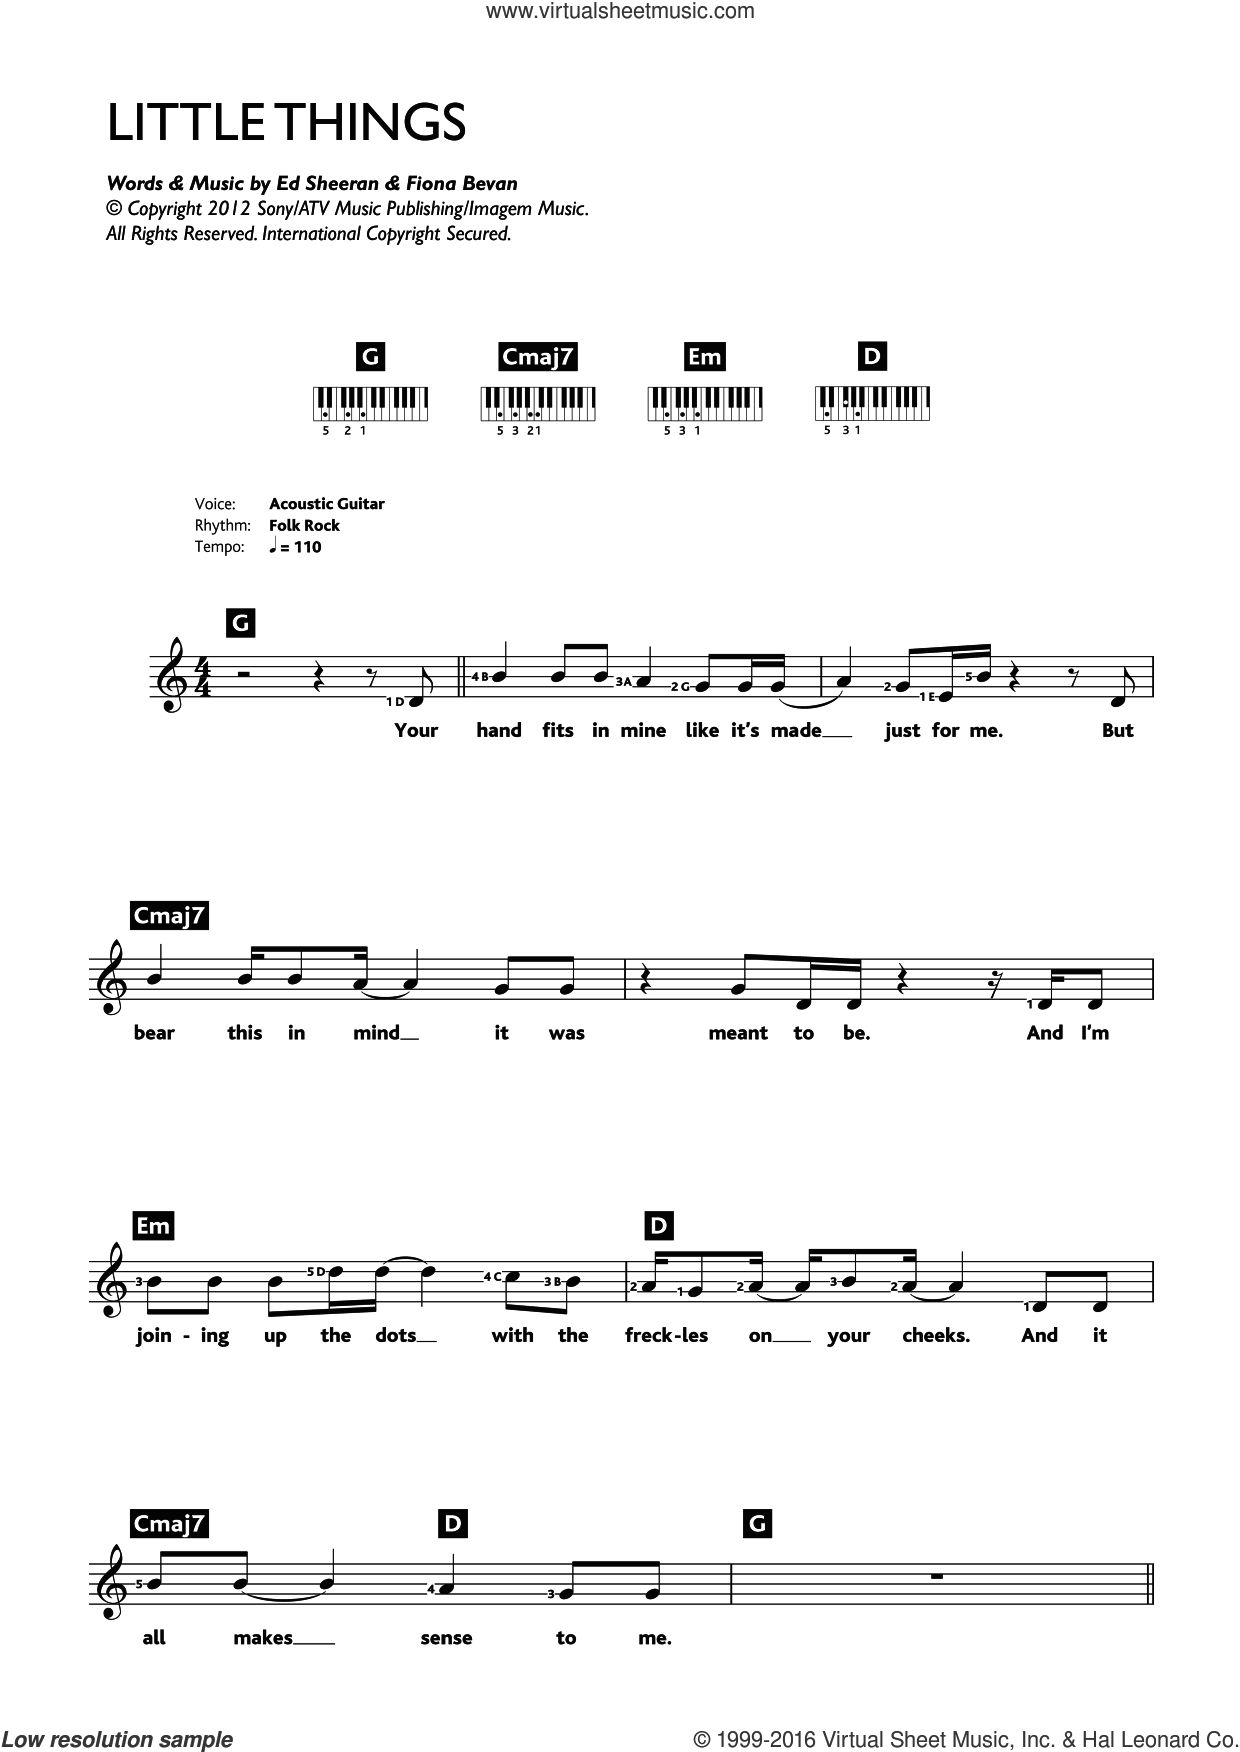 Little Things sheet music for piano solo (chords, lyrics, melody) by Ed Sheeran, One Direction and Fiona Bevan. Score Image Preview.